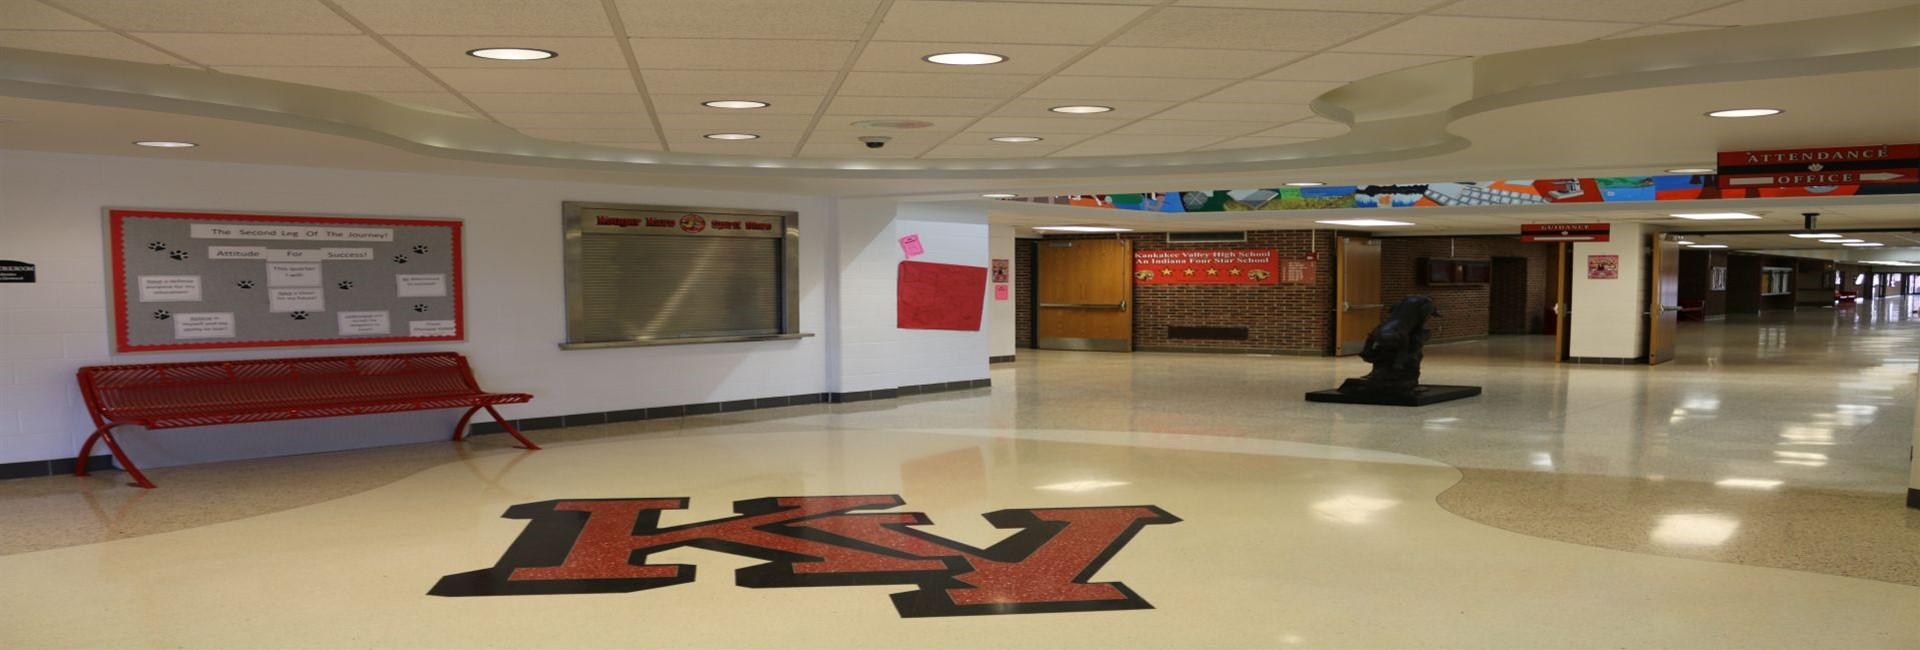 Kankakee Valley High School Lobby